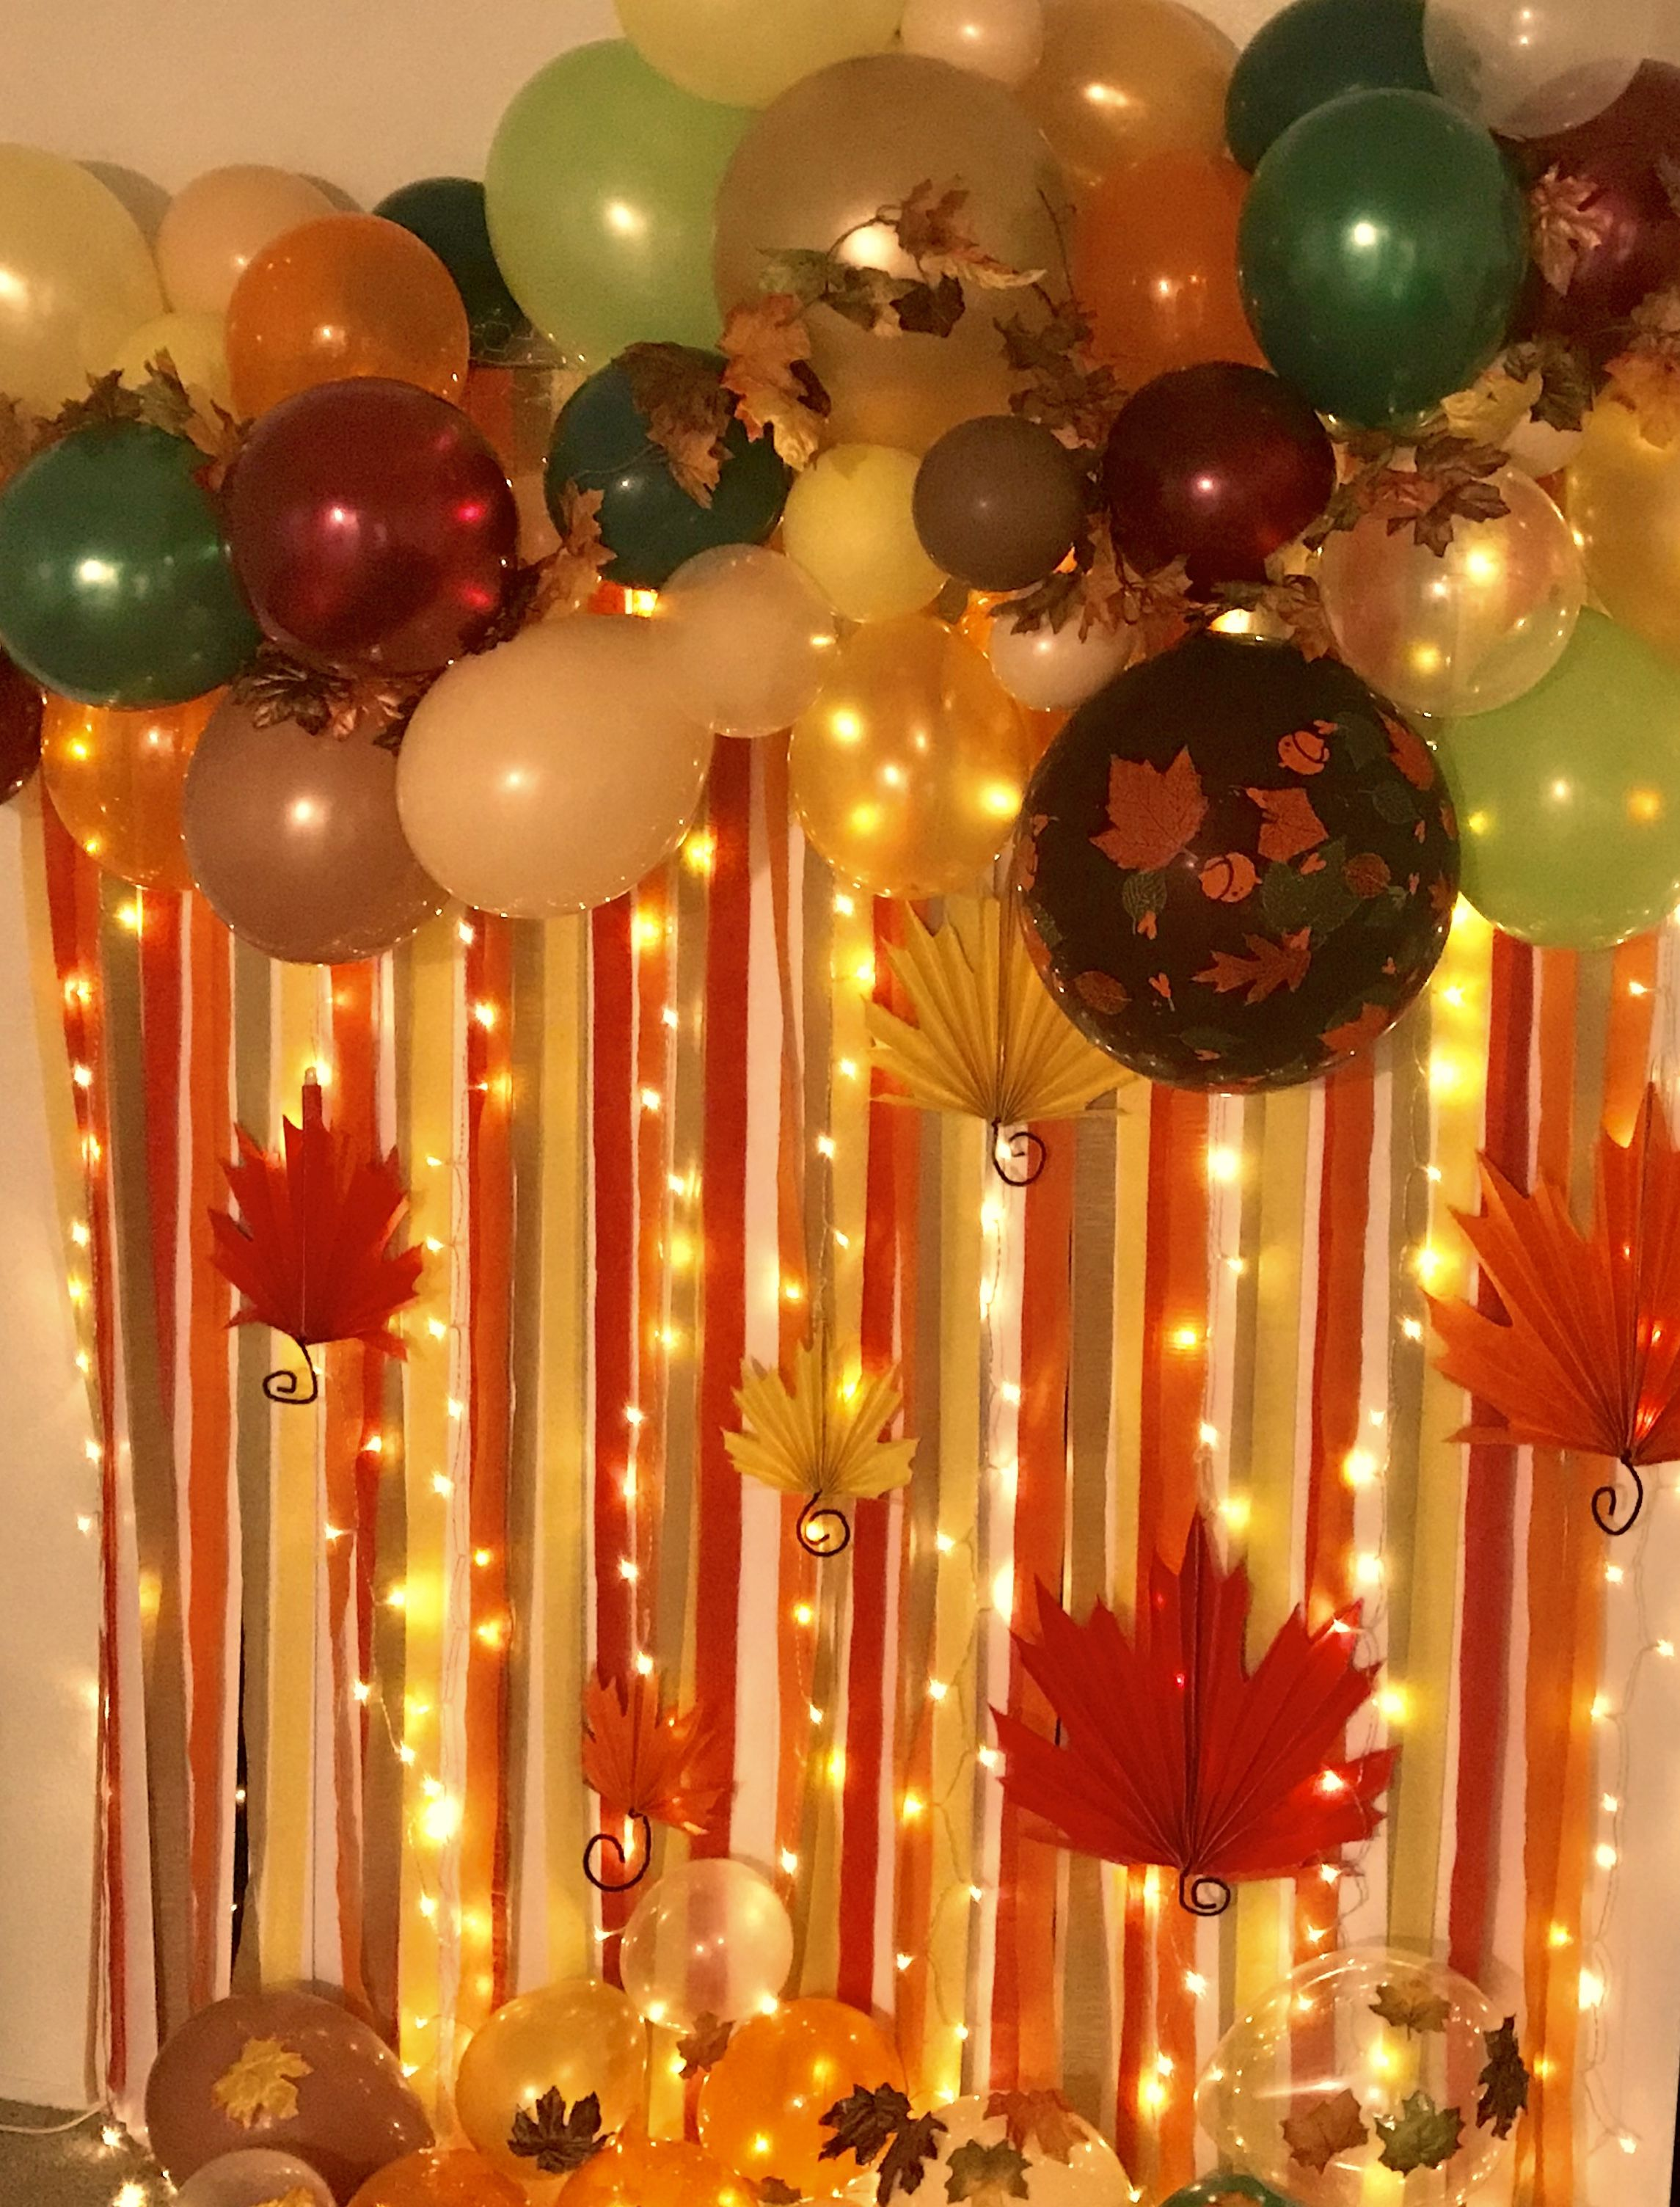 Thanksgiving Backdrop! Autumn Backdrop Ideas! Fall Decorating Ideas! : thanksgiving party decoration ideas - www.pureclipart.com